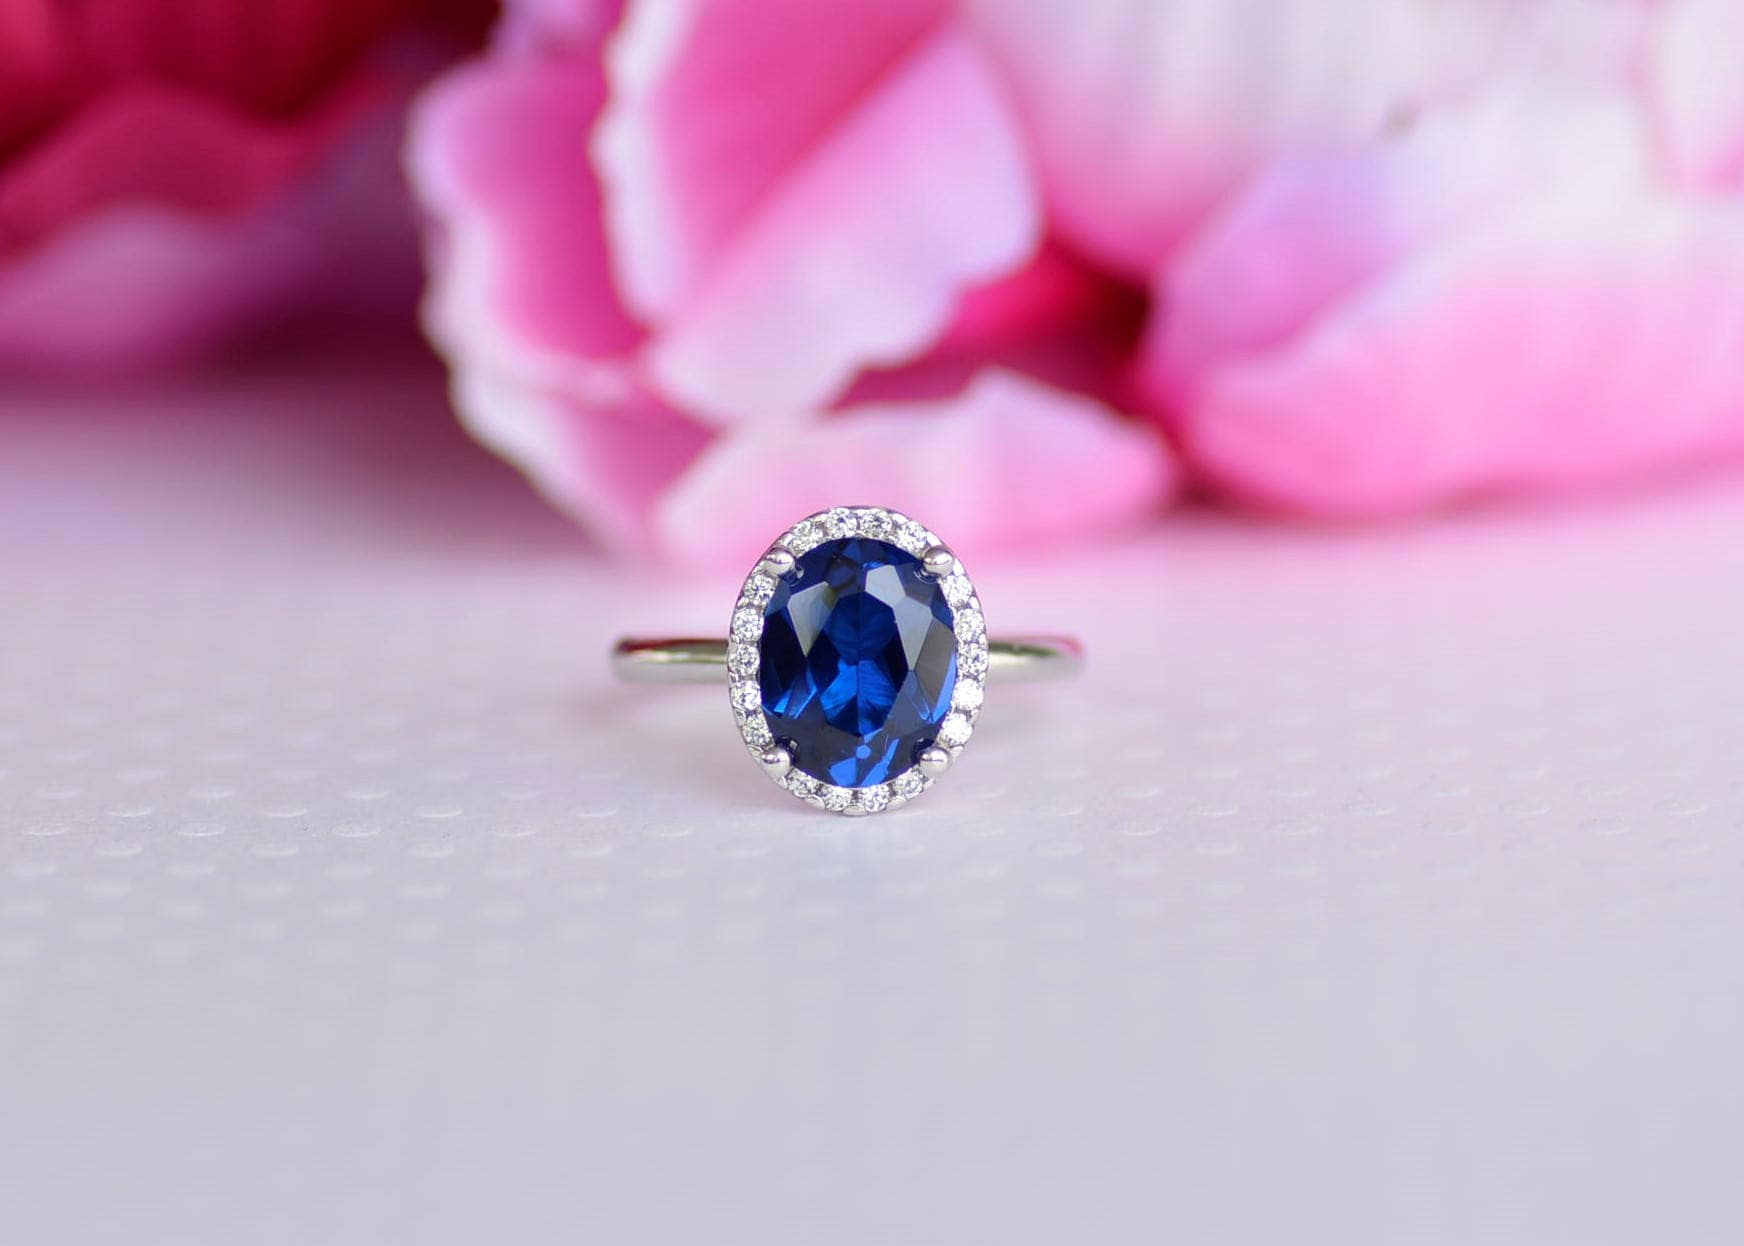 Sterling Silver Blue Oval Cz Ring. Solitaire Ring. Engagement | Etsy